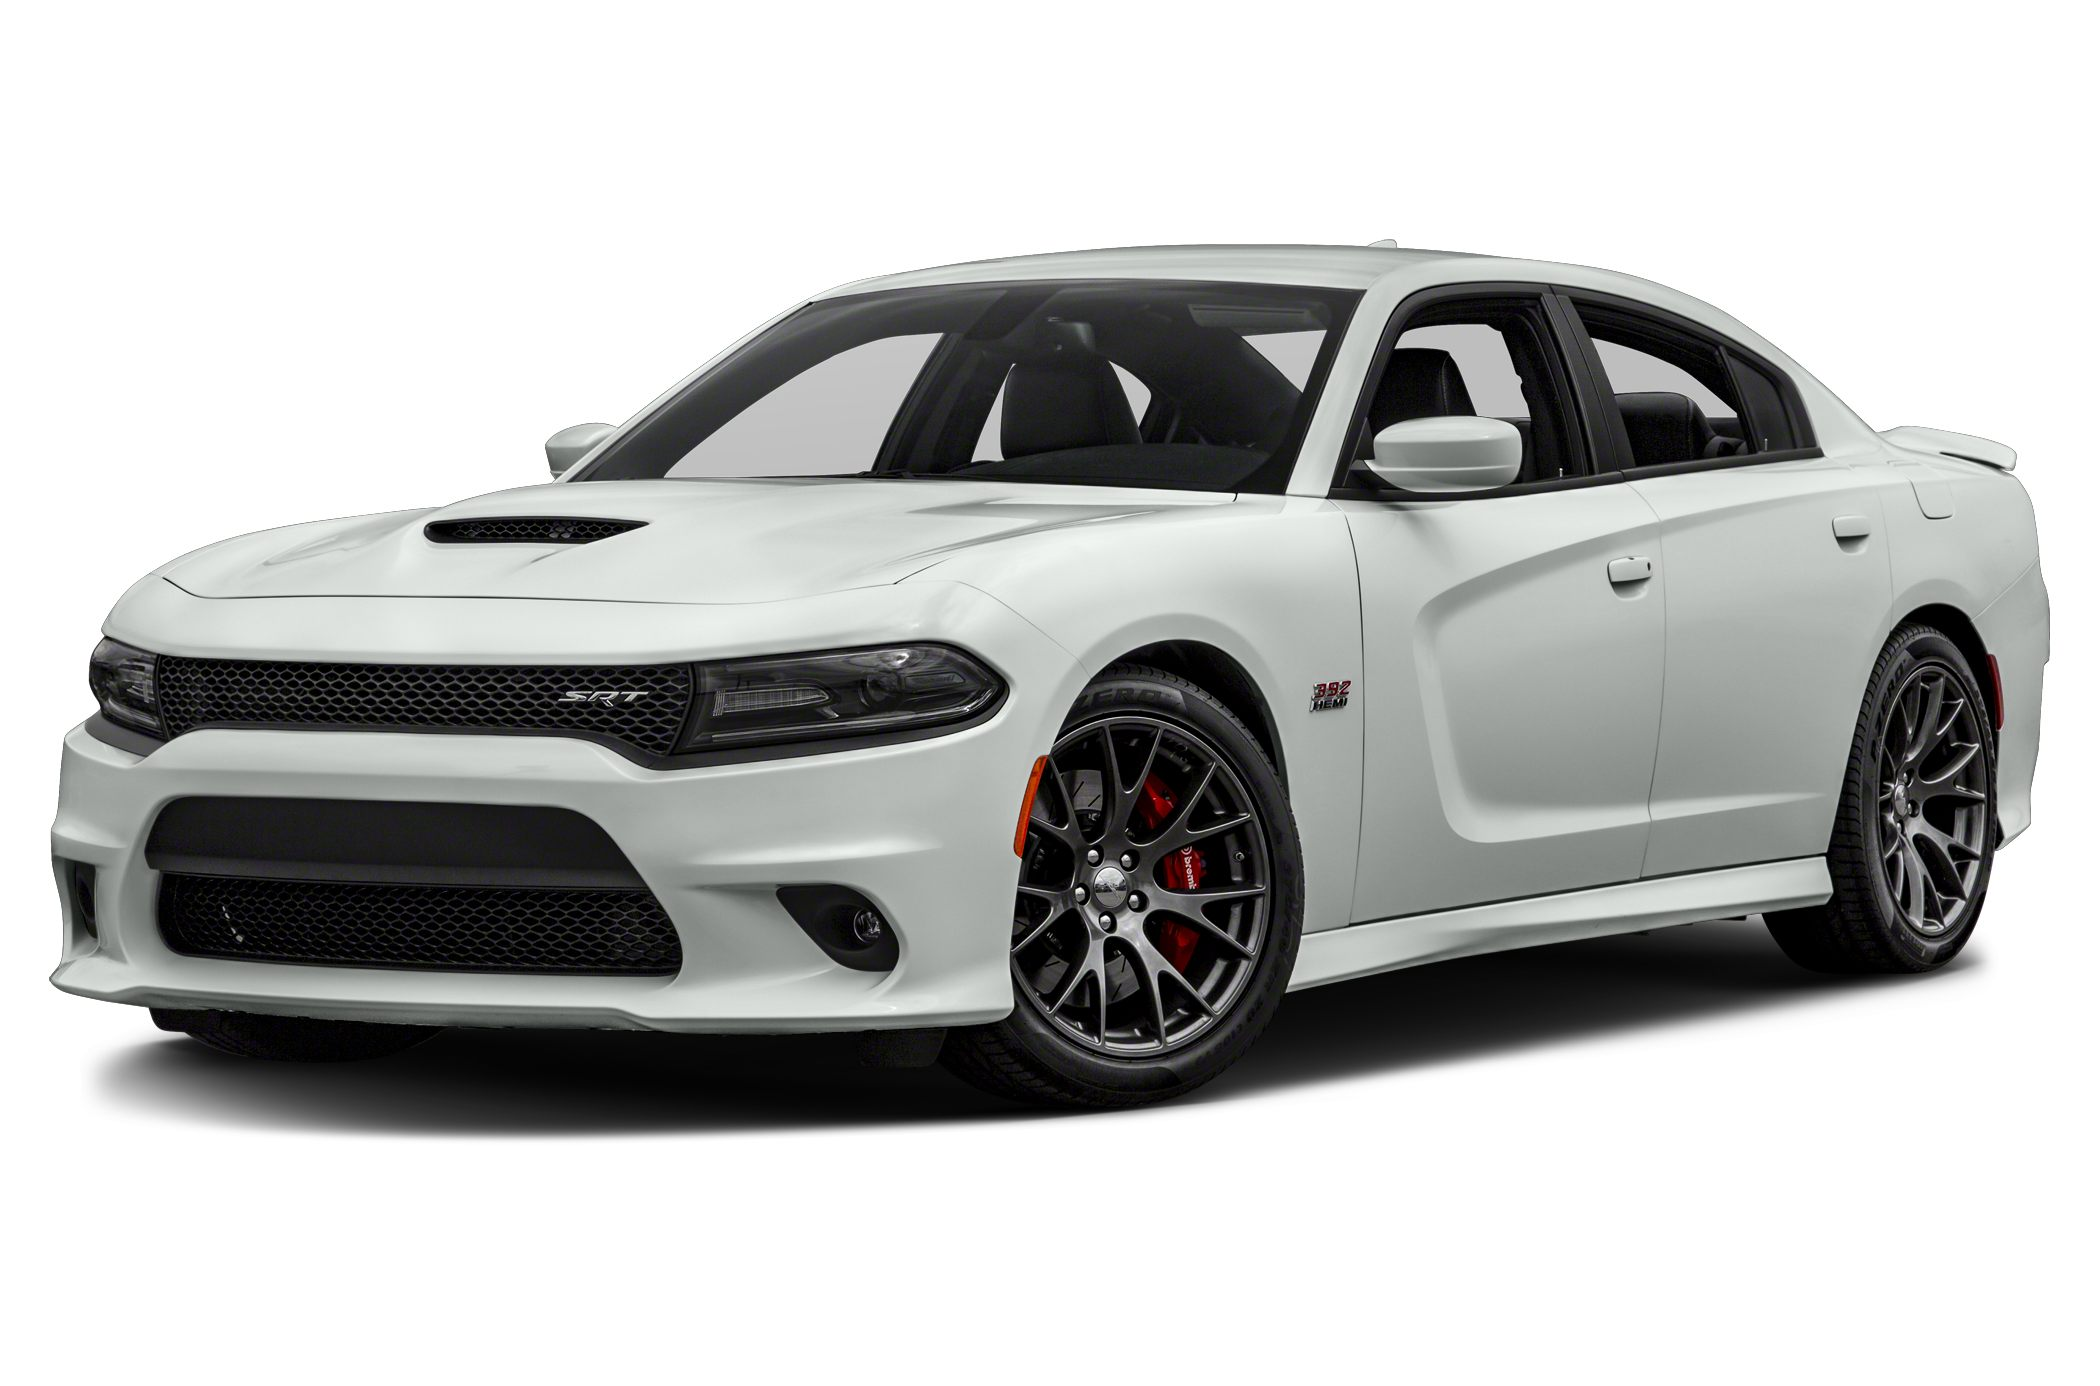 2017 Dodge Charger Photos